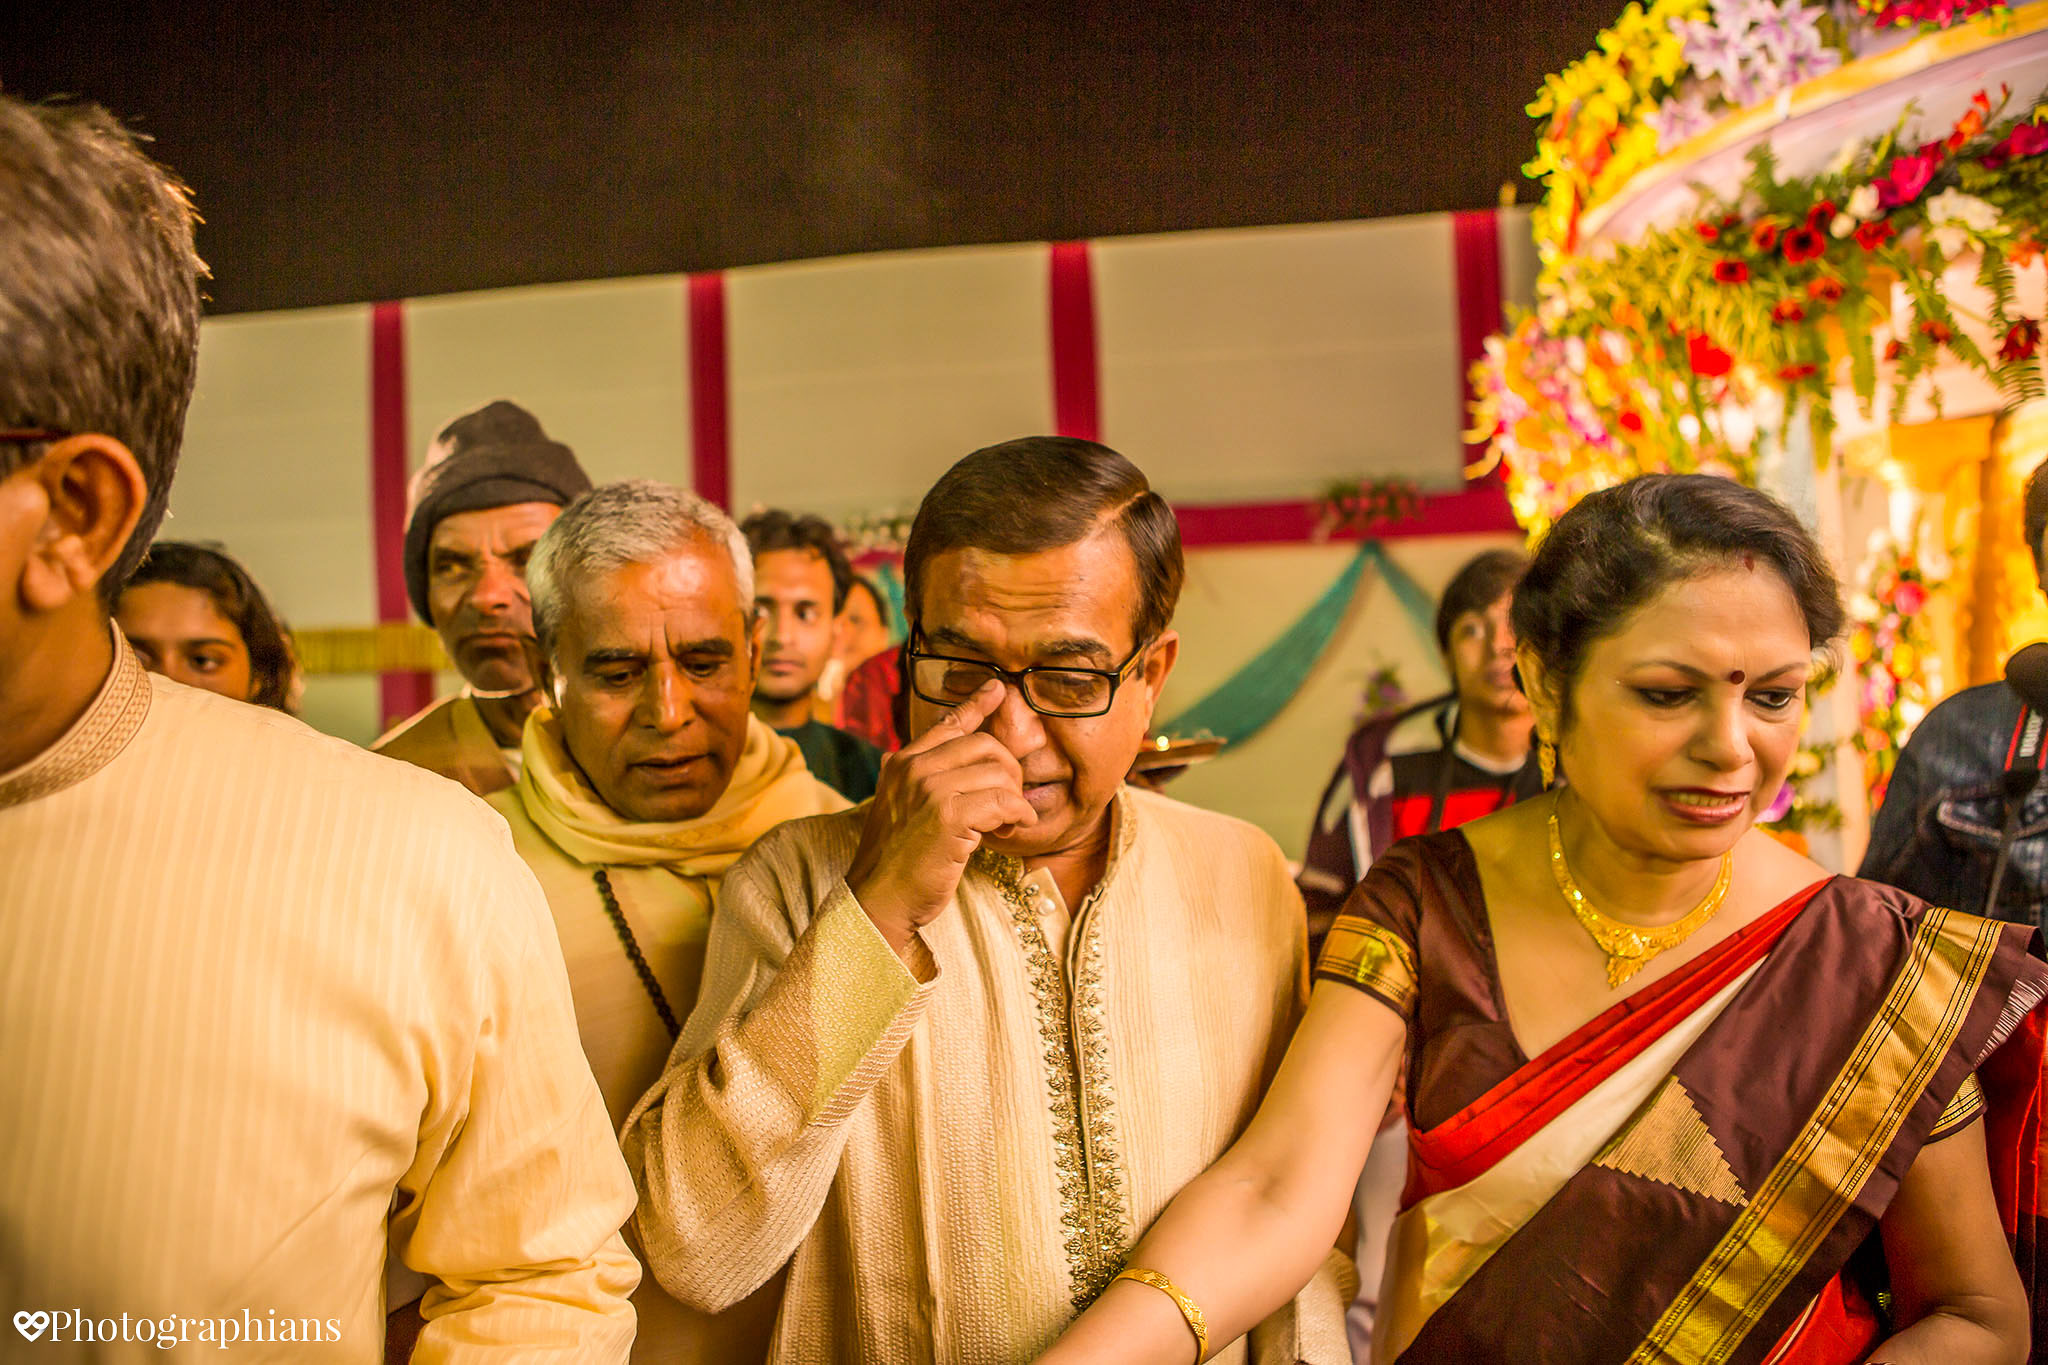 Photographians_Indian_Wedding_Durgapur_025